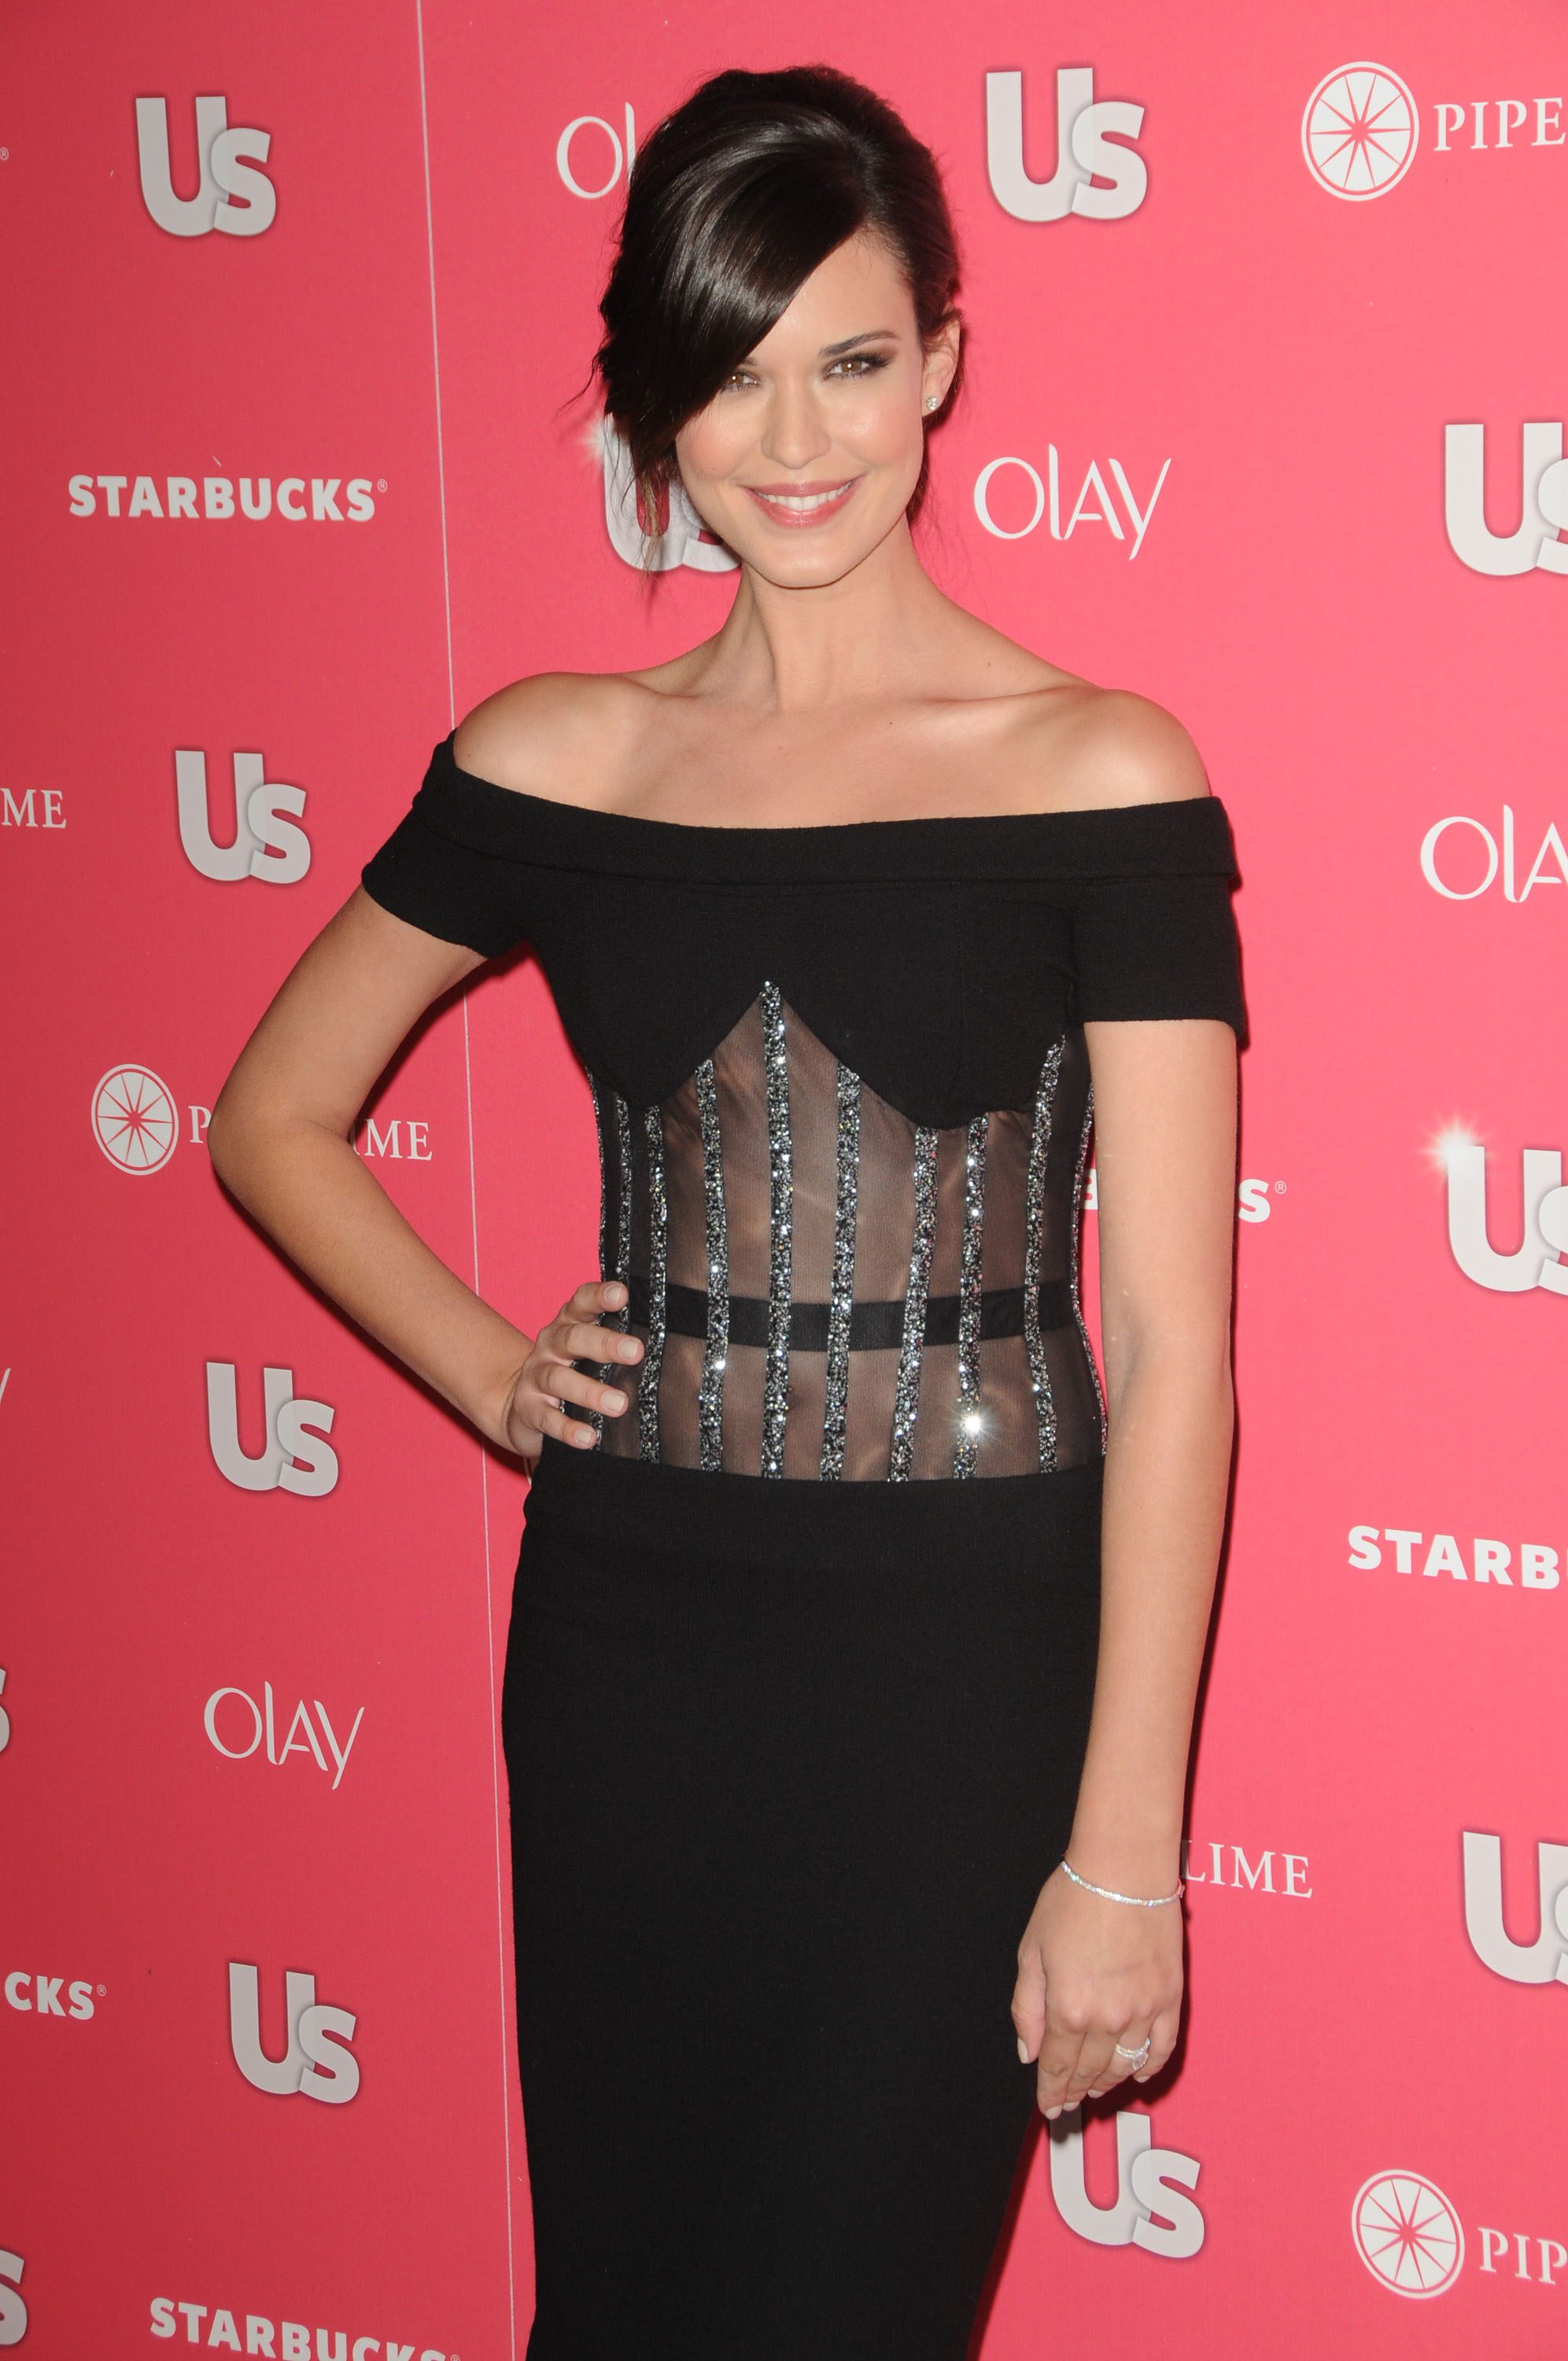 Odette Annable Body 1000+ images about Ode...